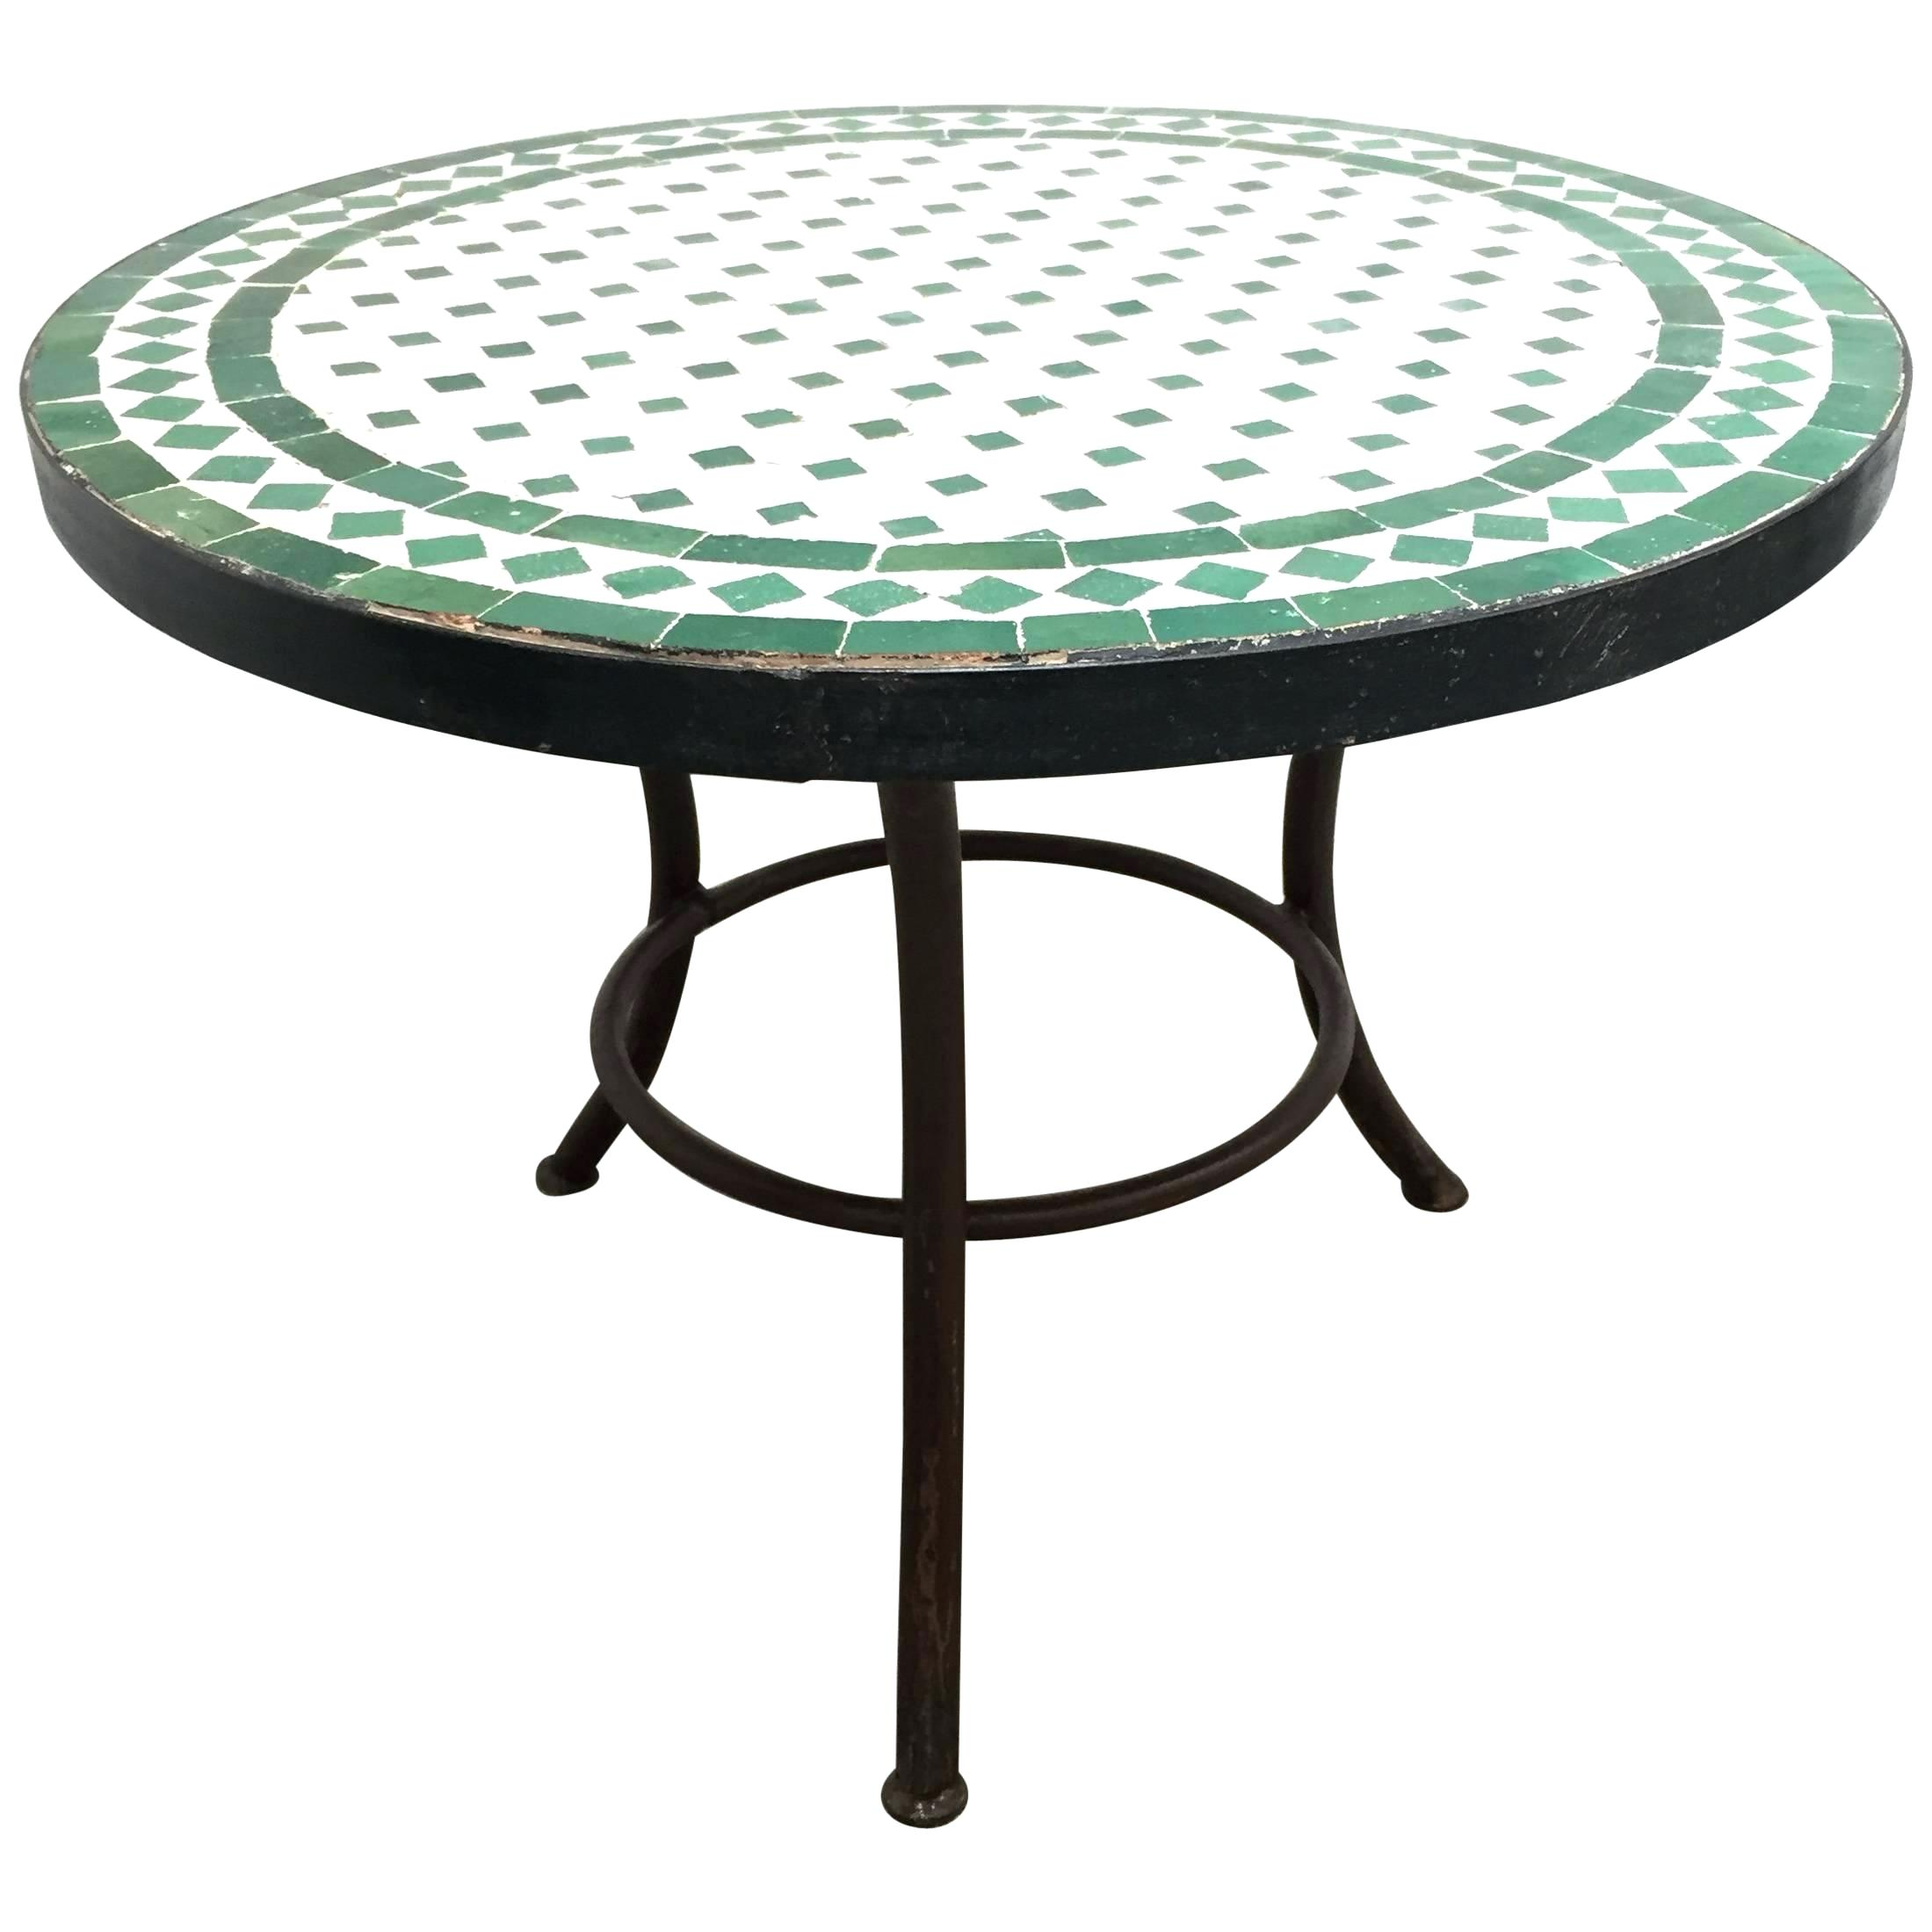 outdoor side table empbank info mosaic tile low iron base green and white for black accent garden chairs set antique gold lamp decorative chests cabinets kitchen hardware pulls